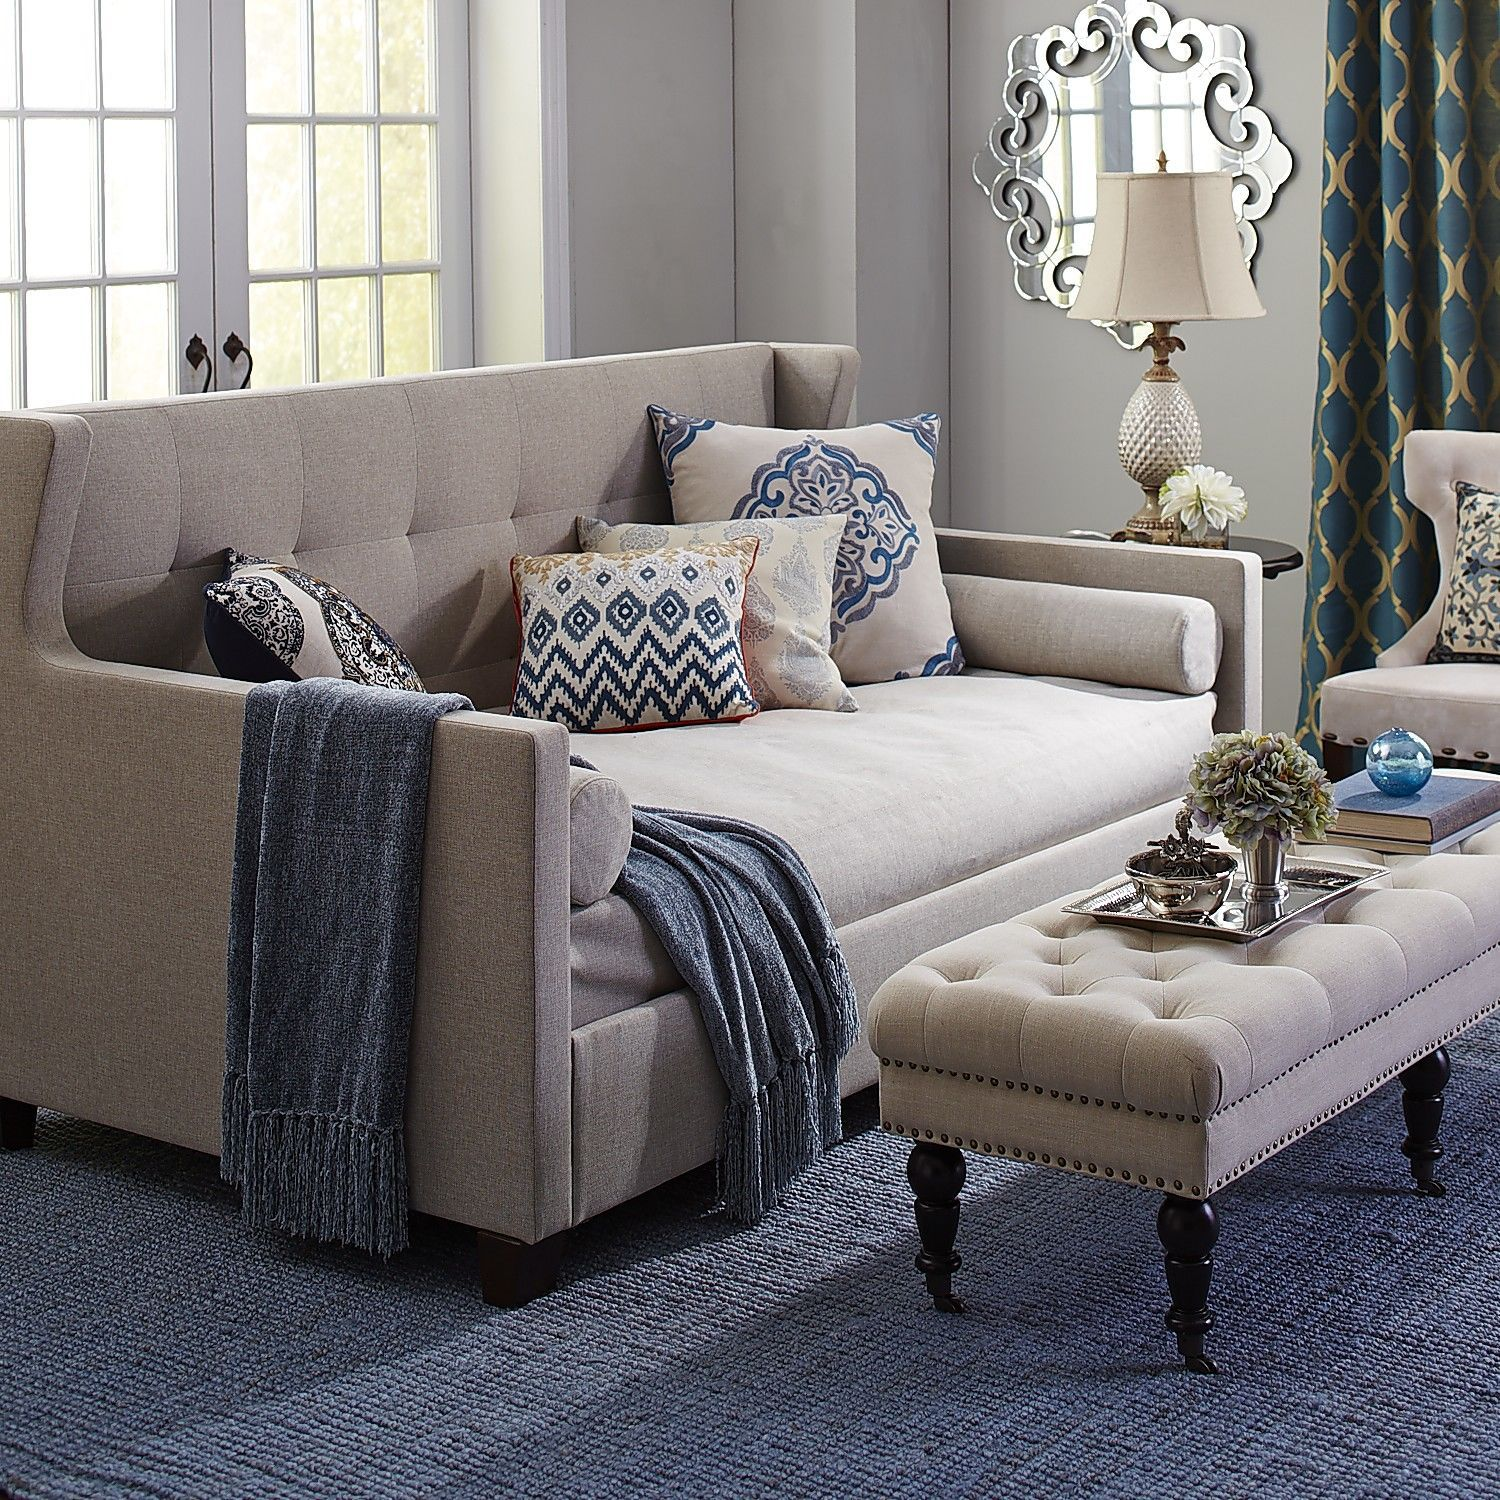 Hester Lift-Up Daybed   Cozy furniture, Home decor, Daybed